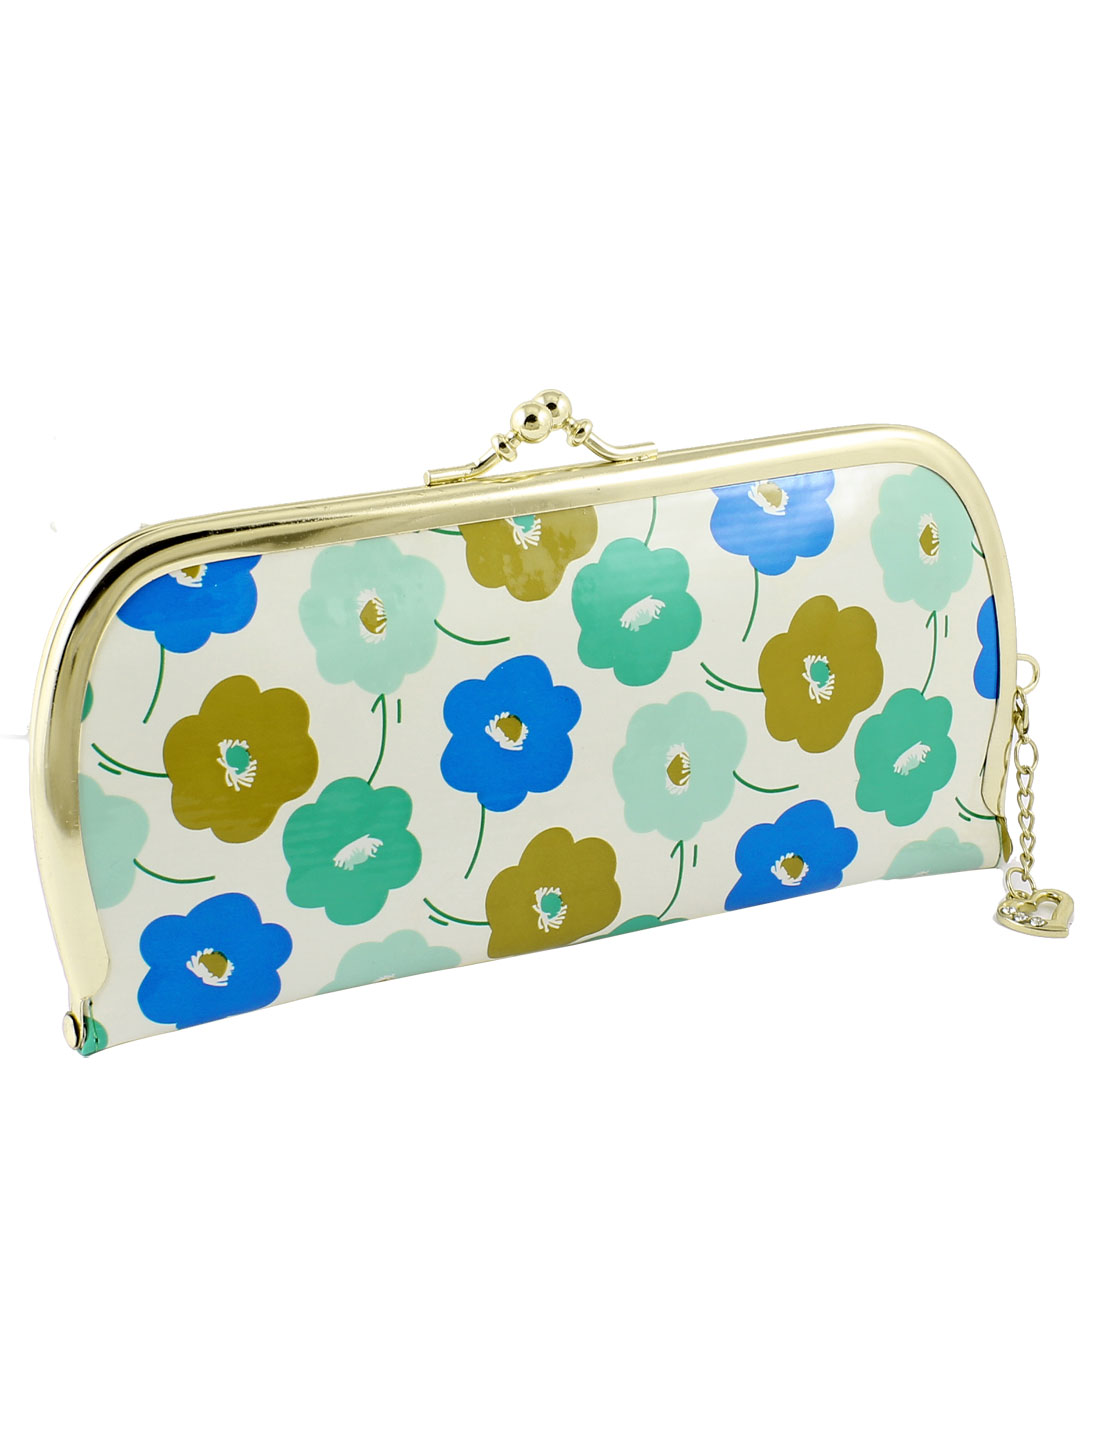 Metal Kisslock Clasp Blue Green Khaki Flowers Printed Faux Leather Wallet Purse